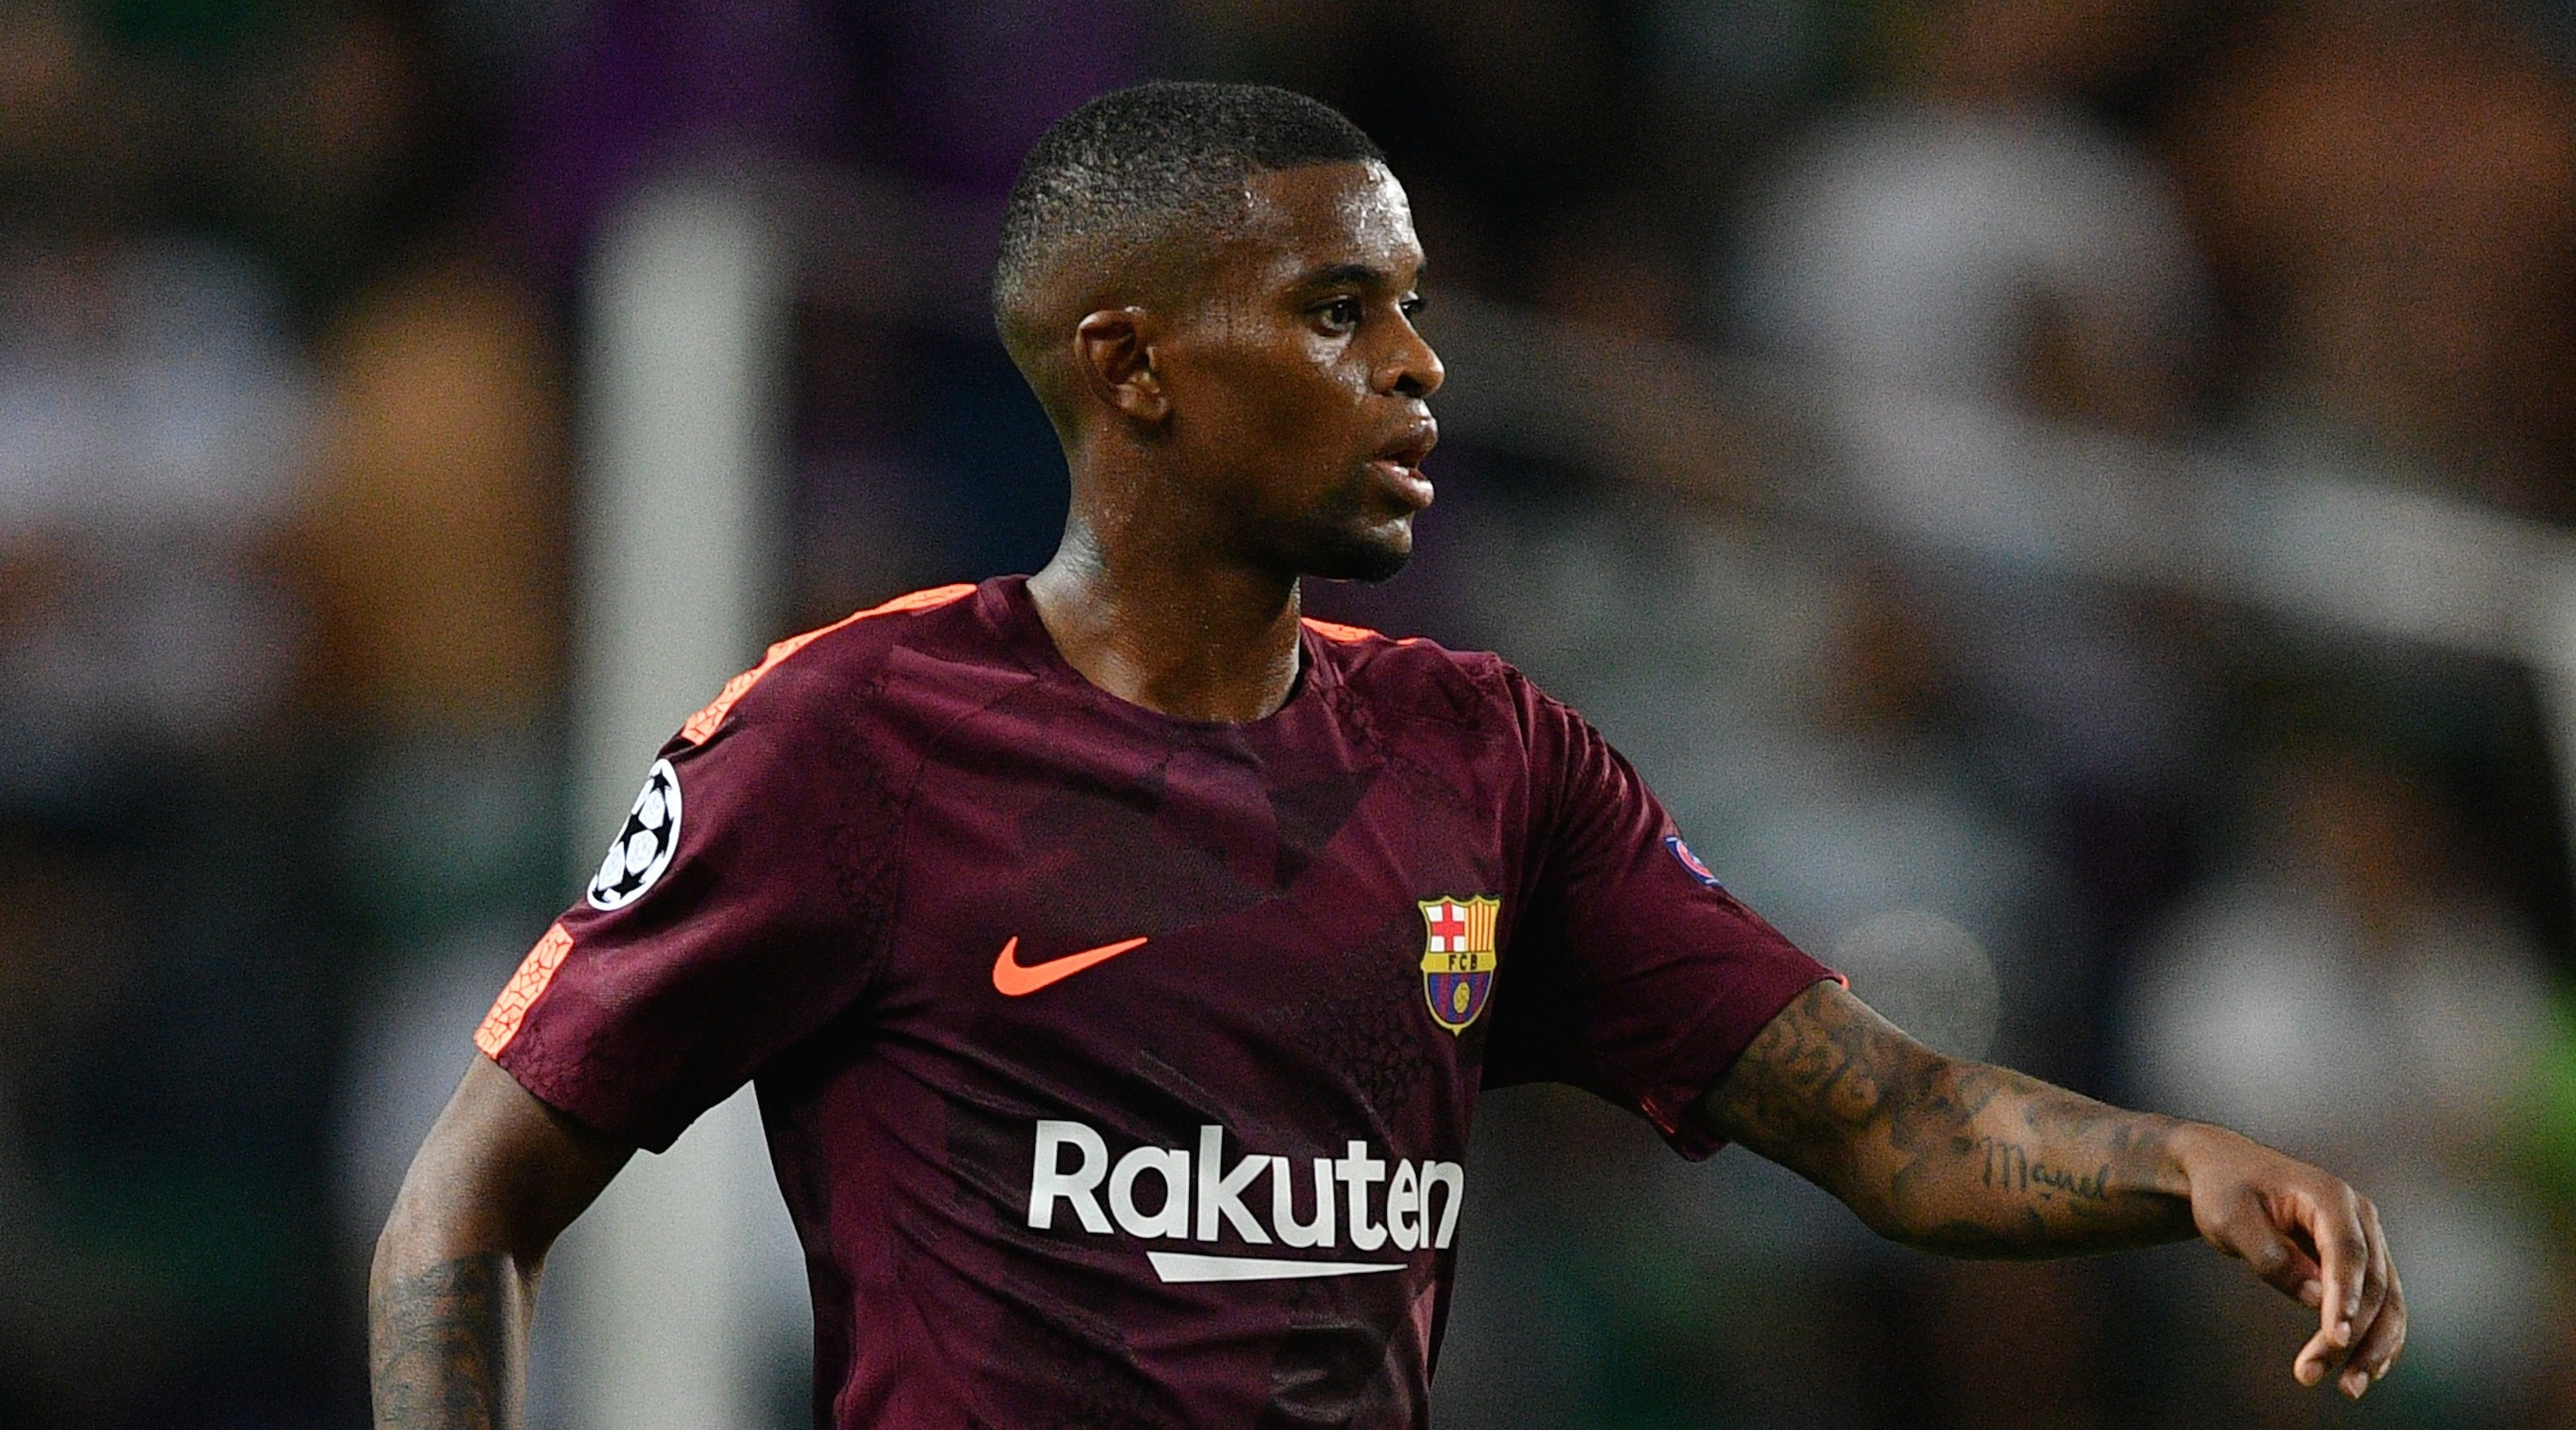 LISBON, PORTUGAL - SEPTEMBER 27: Nelson Semedo of FC Barcelona in action during the UEFA Champions League group D match between Sporting CP and FC Barcelona at Estadio Jose Alvalade on September 27, 2017 in Lisbon, Portugal. (Photo by Octavio Passos/Getty Images)